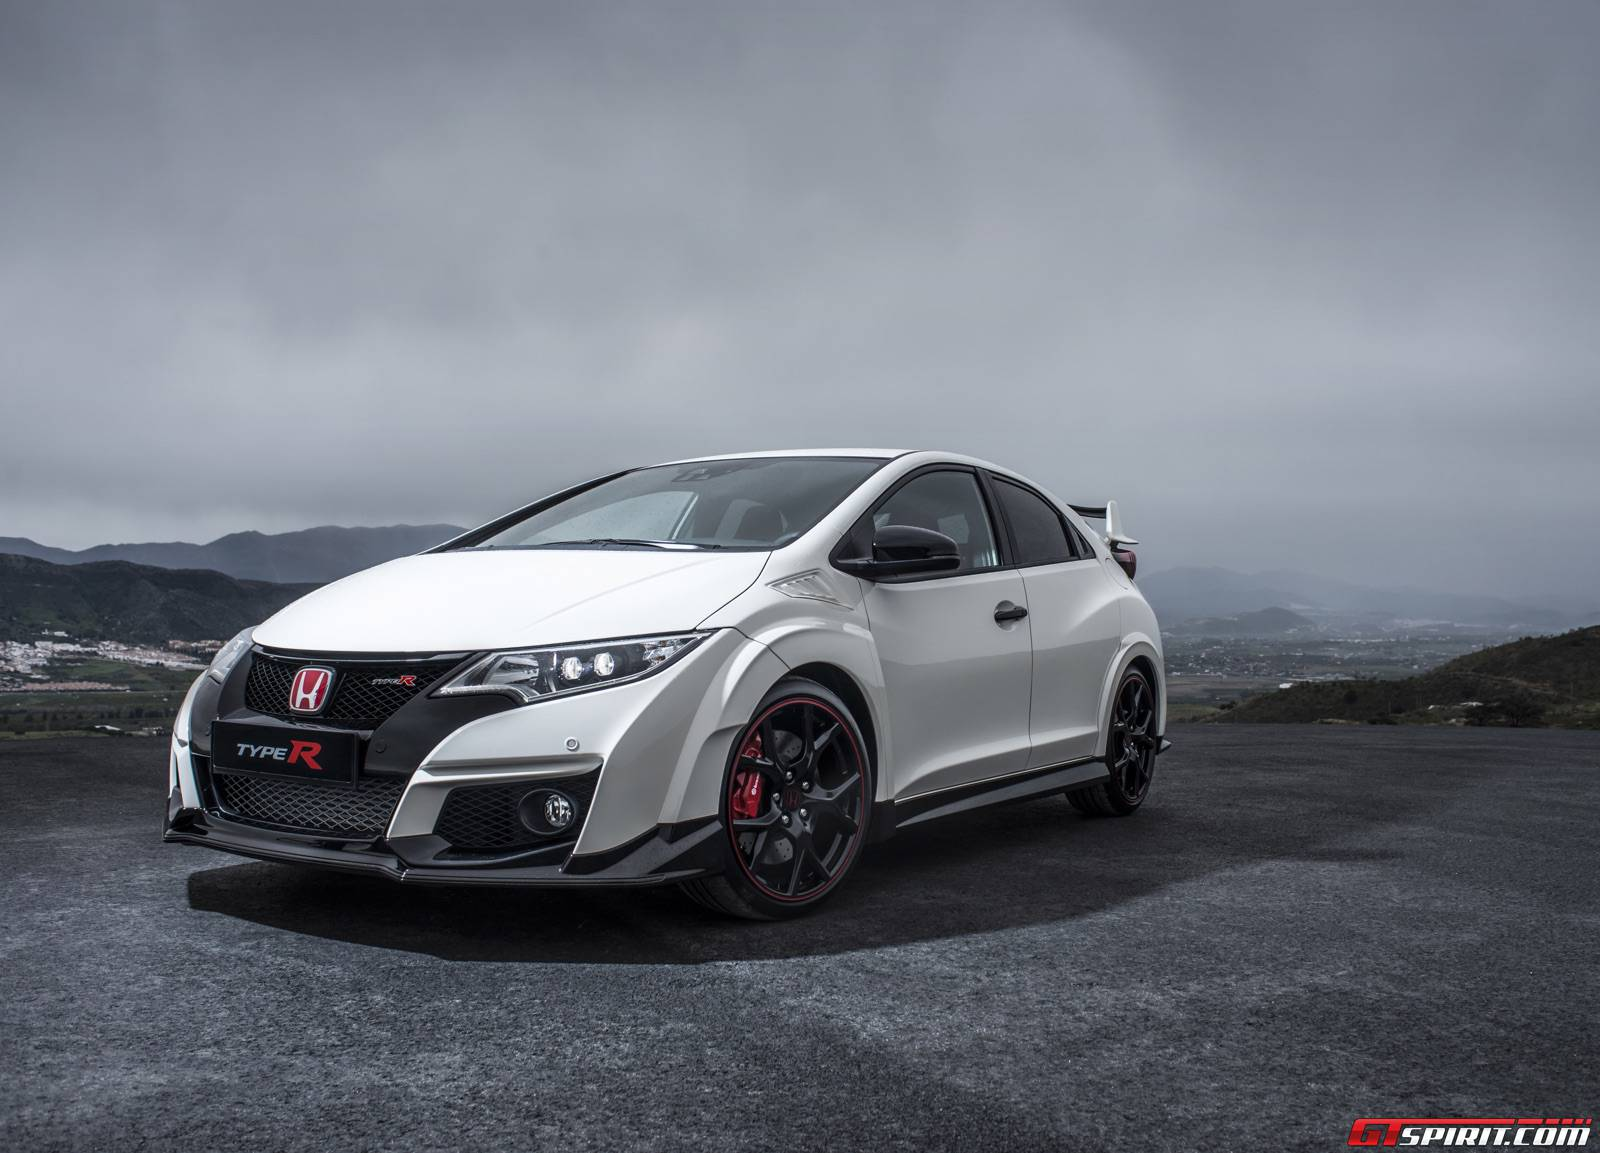 official 2015 honda civic type r gtspirit. Black Bedroom Furniture Sets. Home Design Ideas